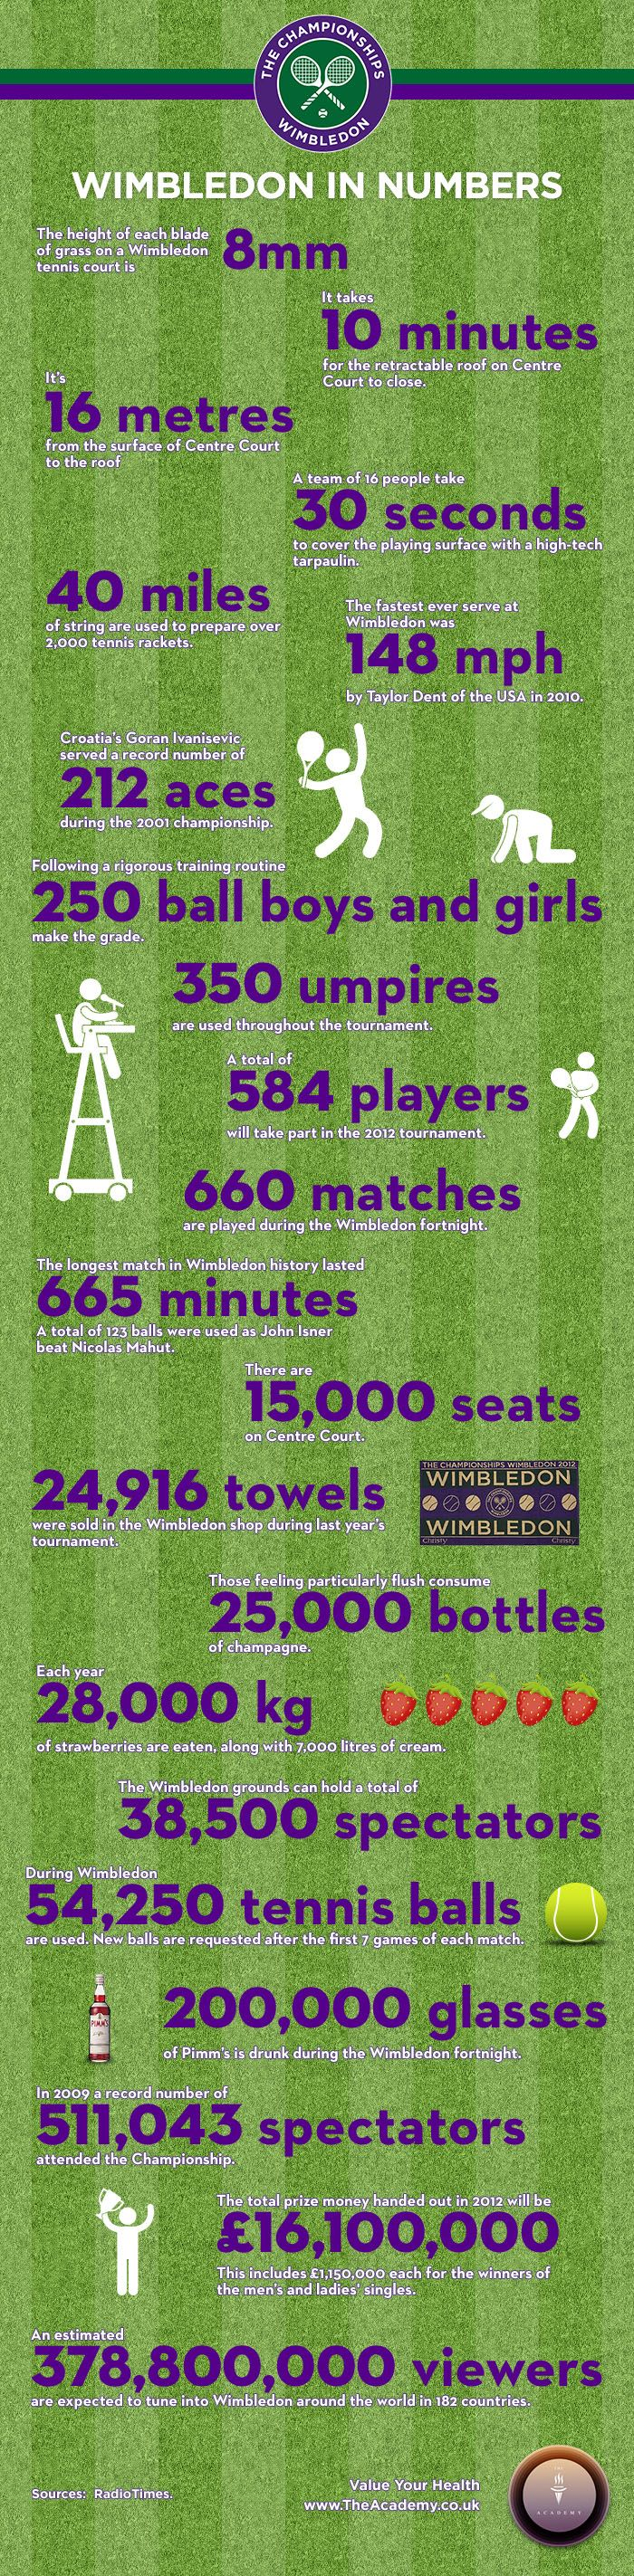 From seats to strawberries, Pimm's to prize money; our infographic takes a look at the Wimbledon tennis Championship in numbers.